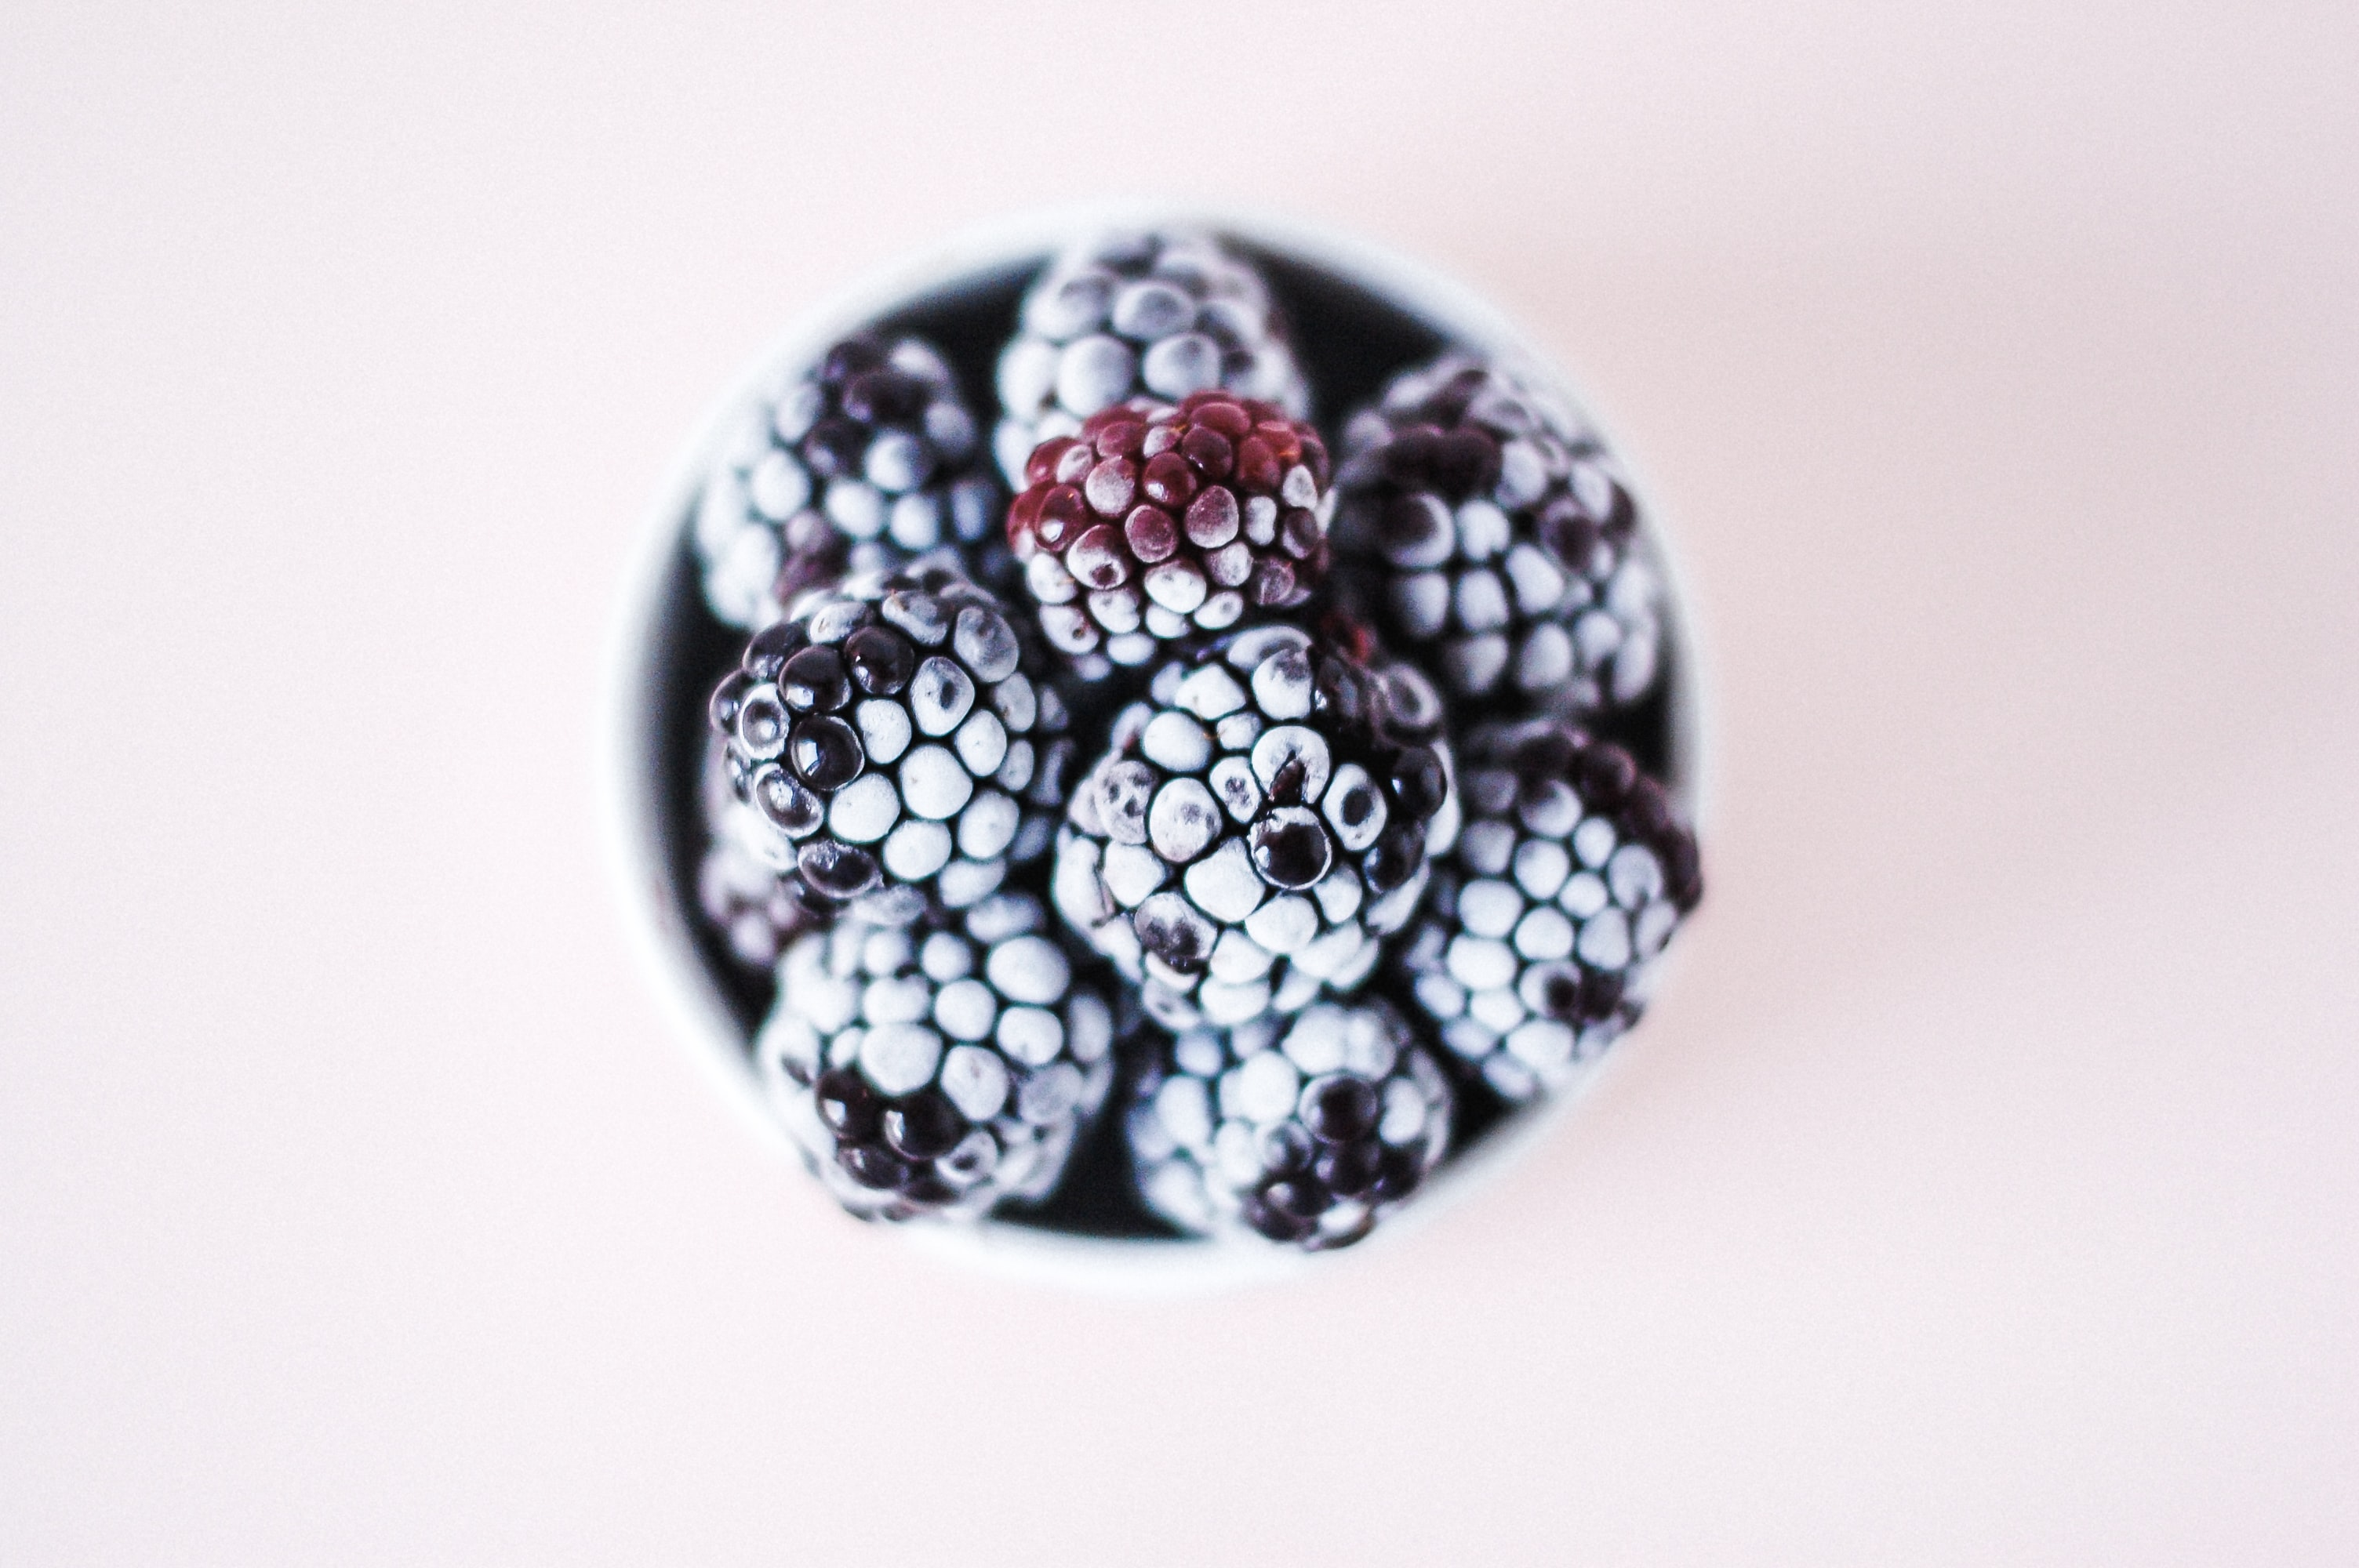 selective focus photography of blackberries